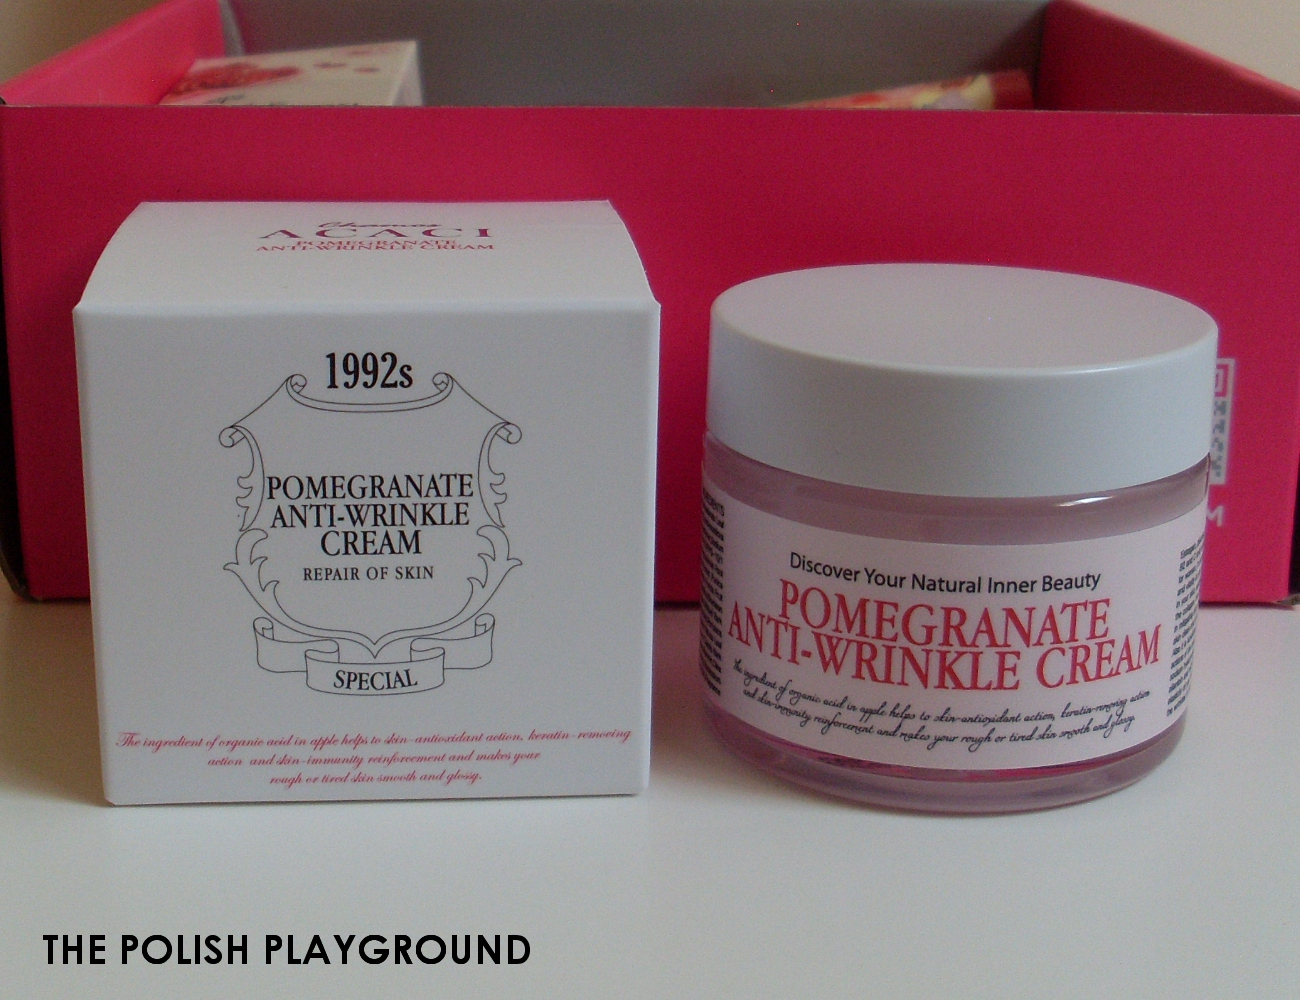 Memebox Superbox #40 Pomegranate Cosmetics Unboxing - Chamos Acaci Pomegranate Anti-Wrinkle Cream